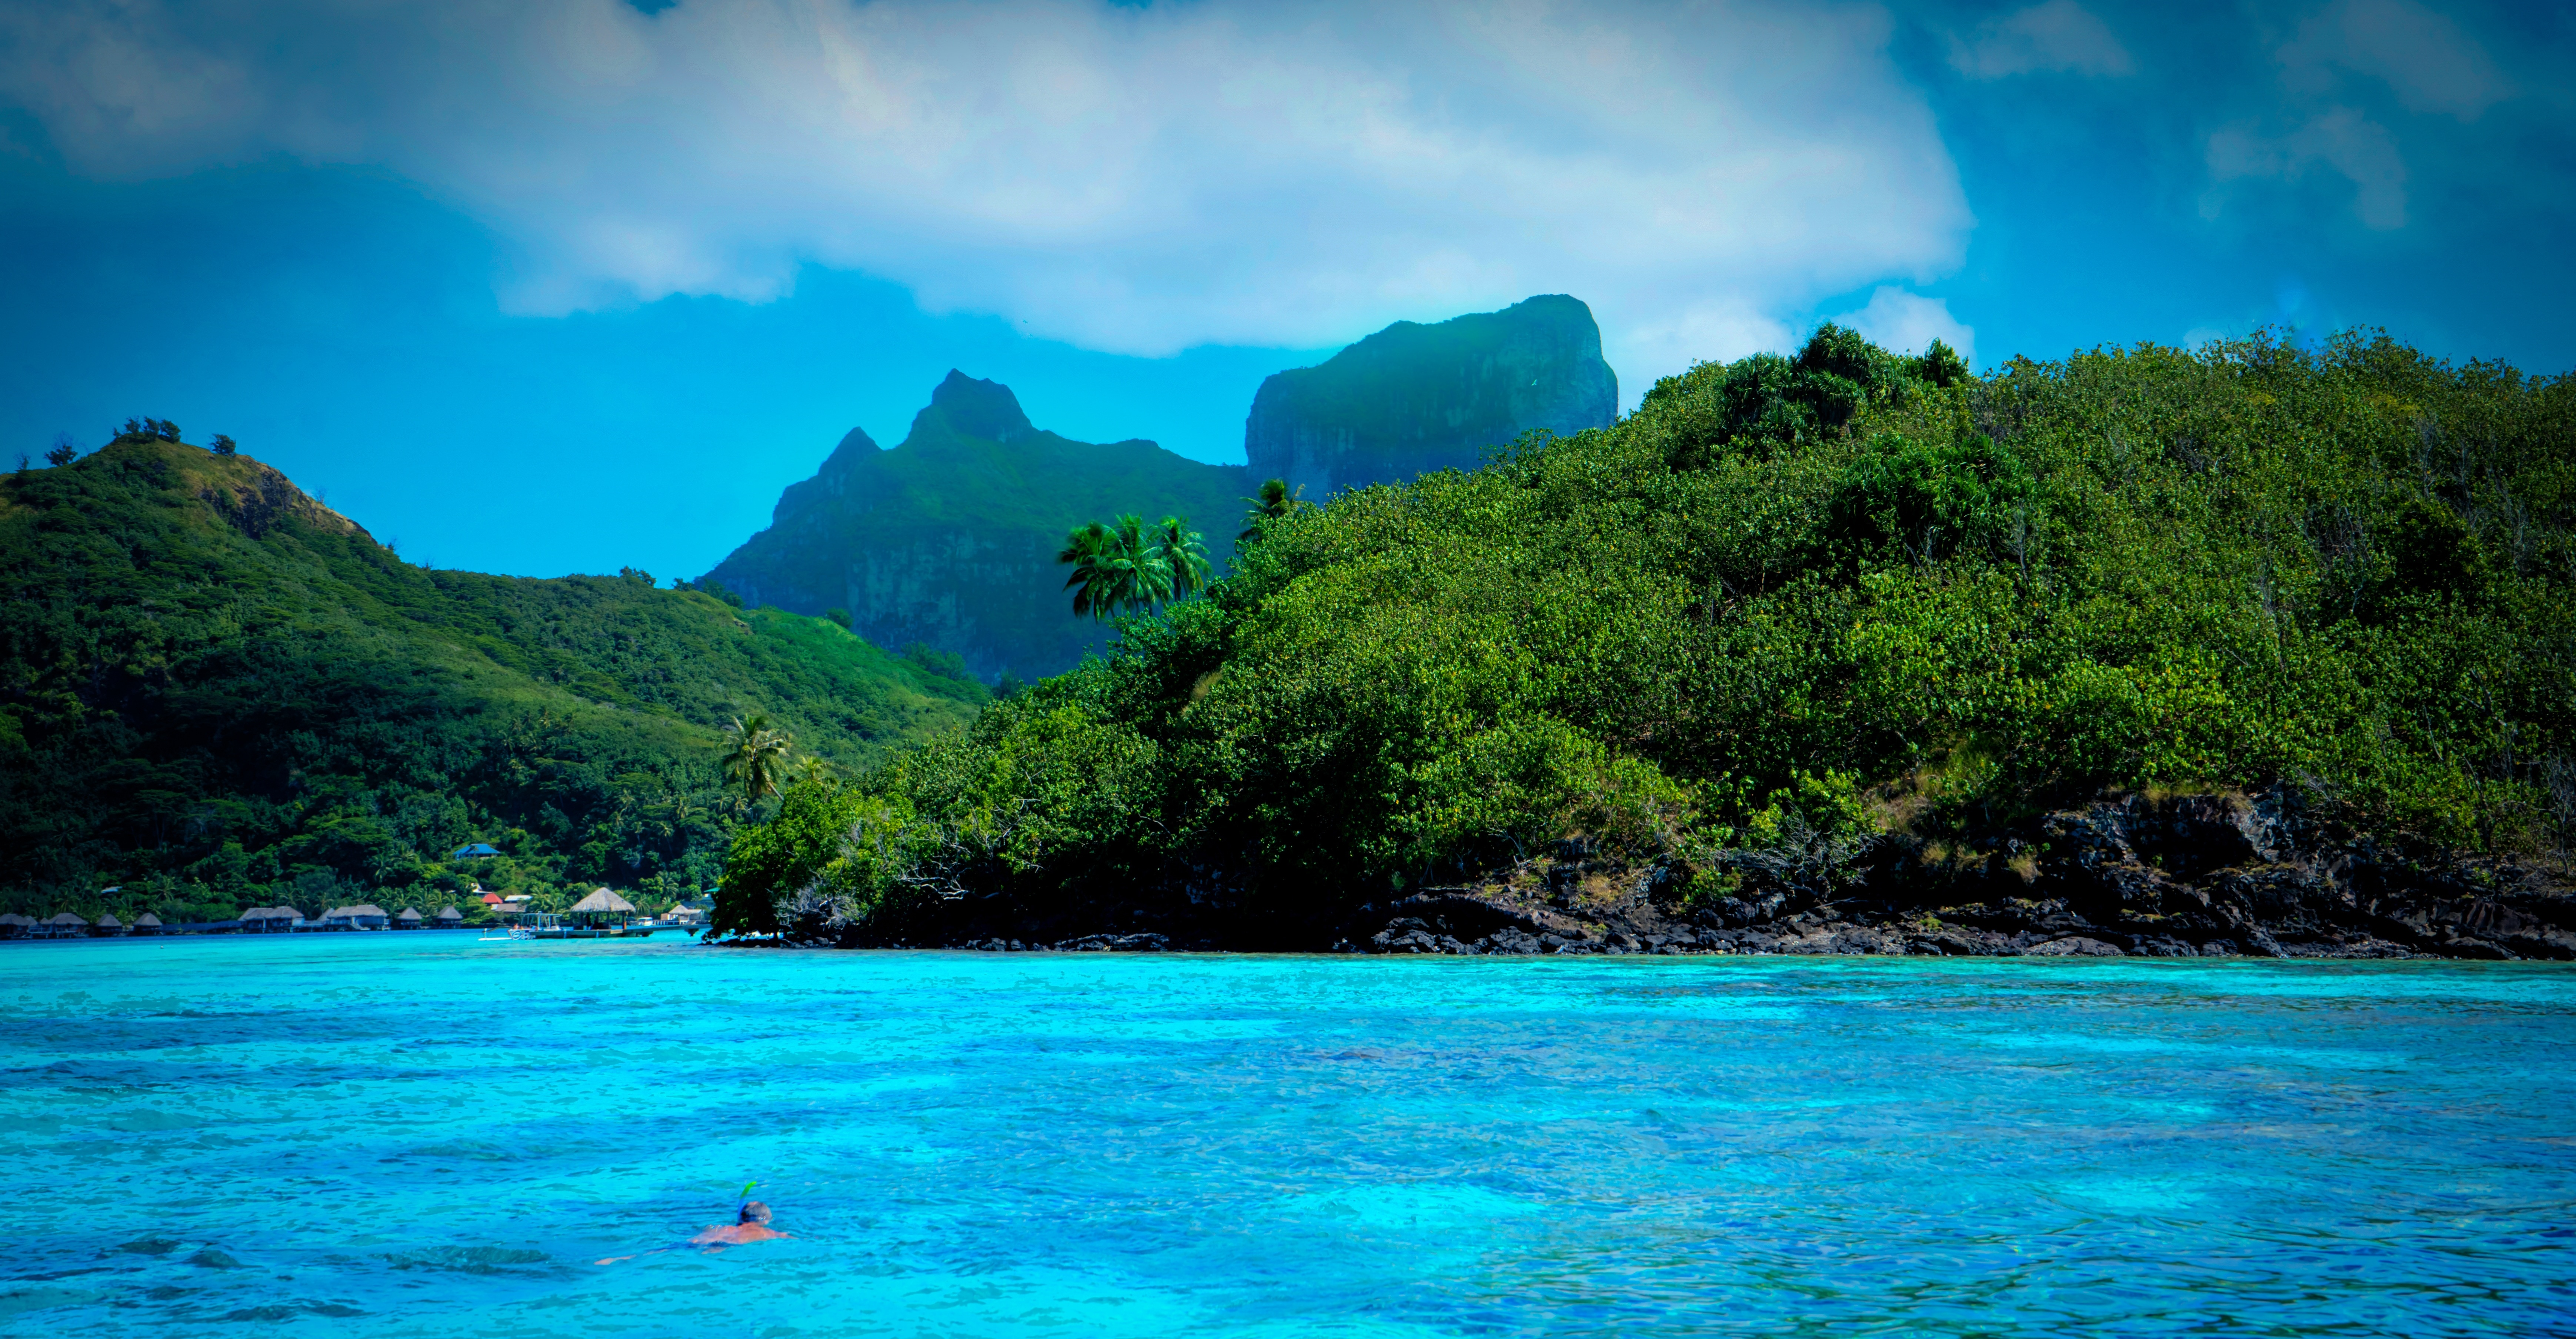 Creative Hd Wallpapers Free Download Tree Covered Mountains And Ocean Free Image Peakpx